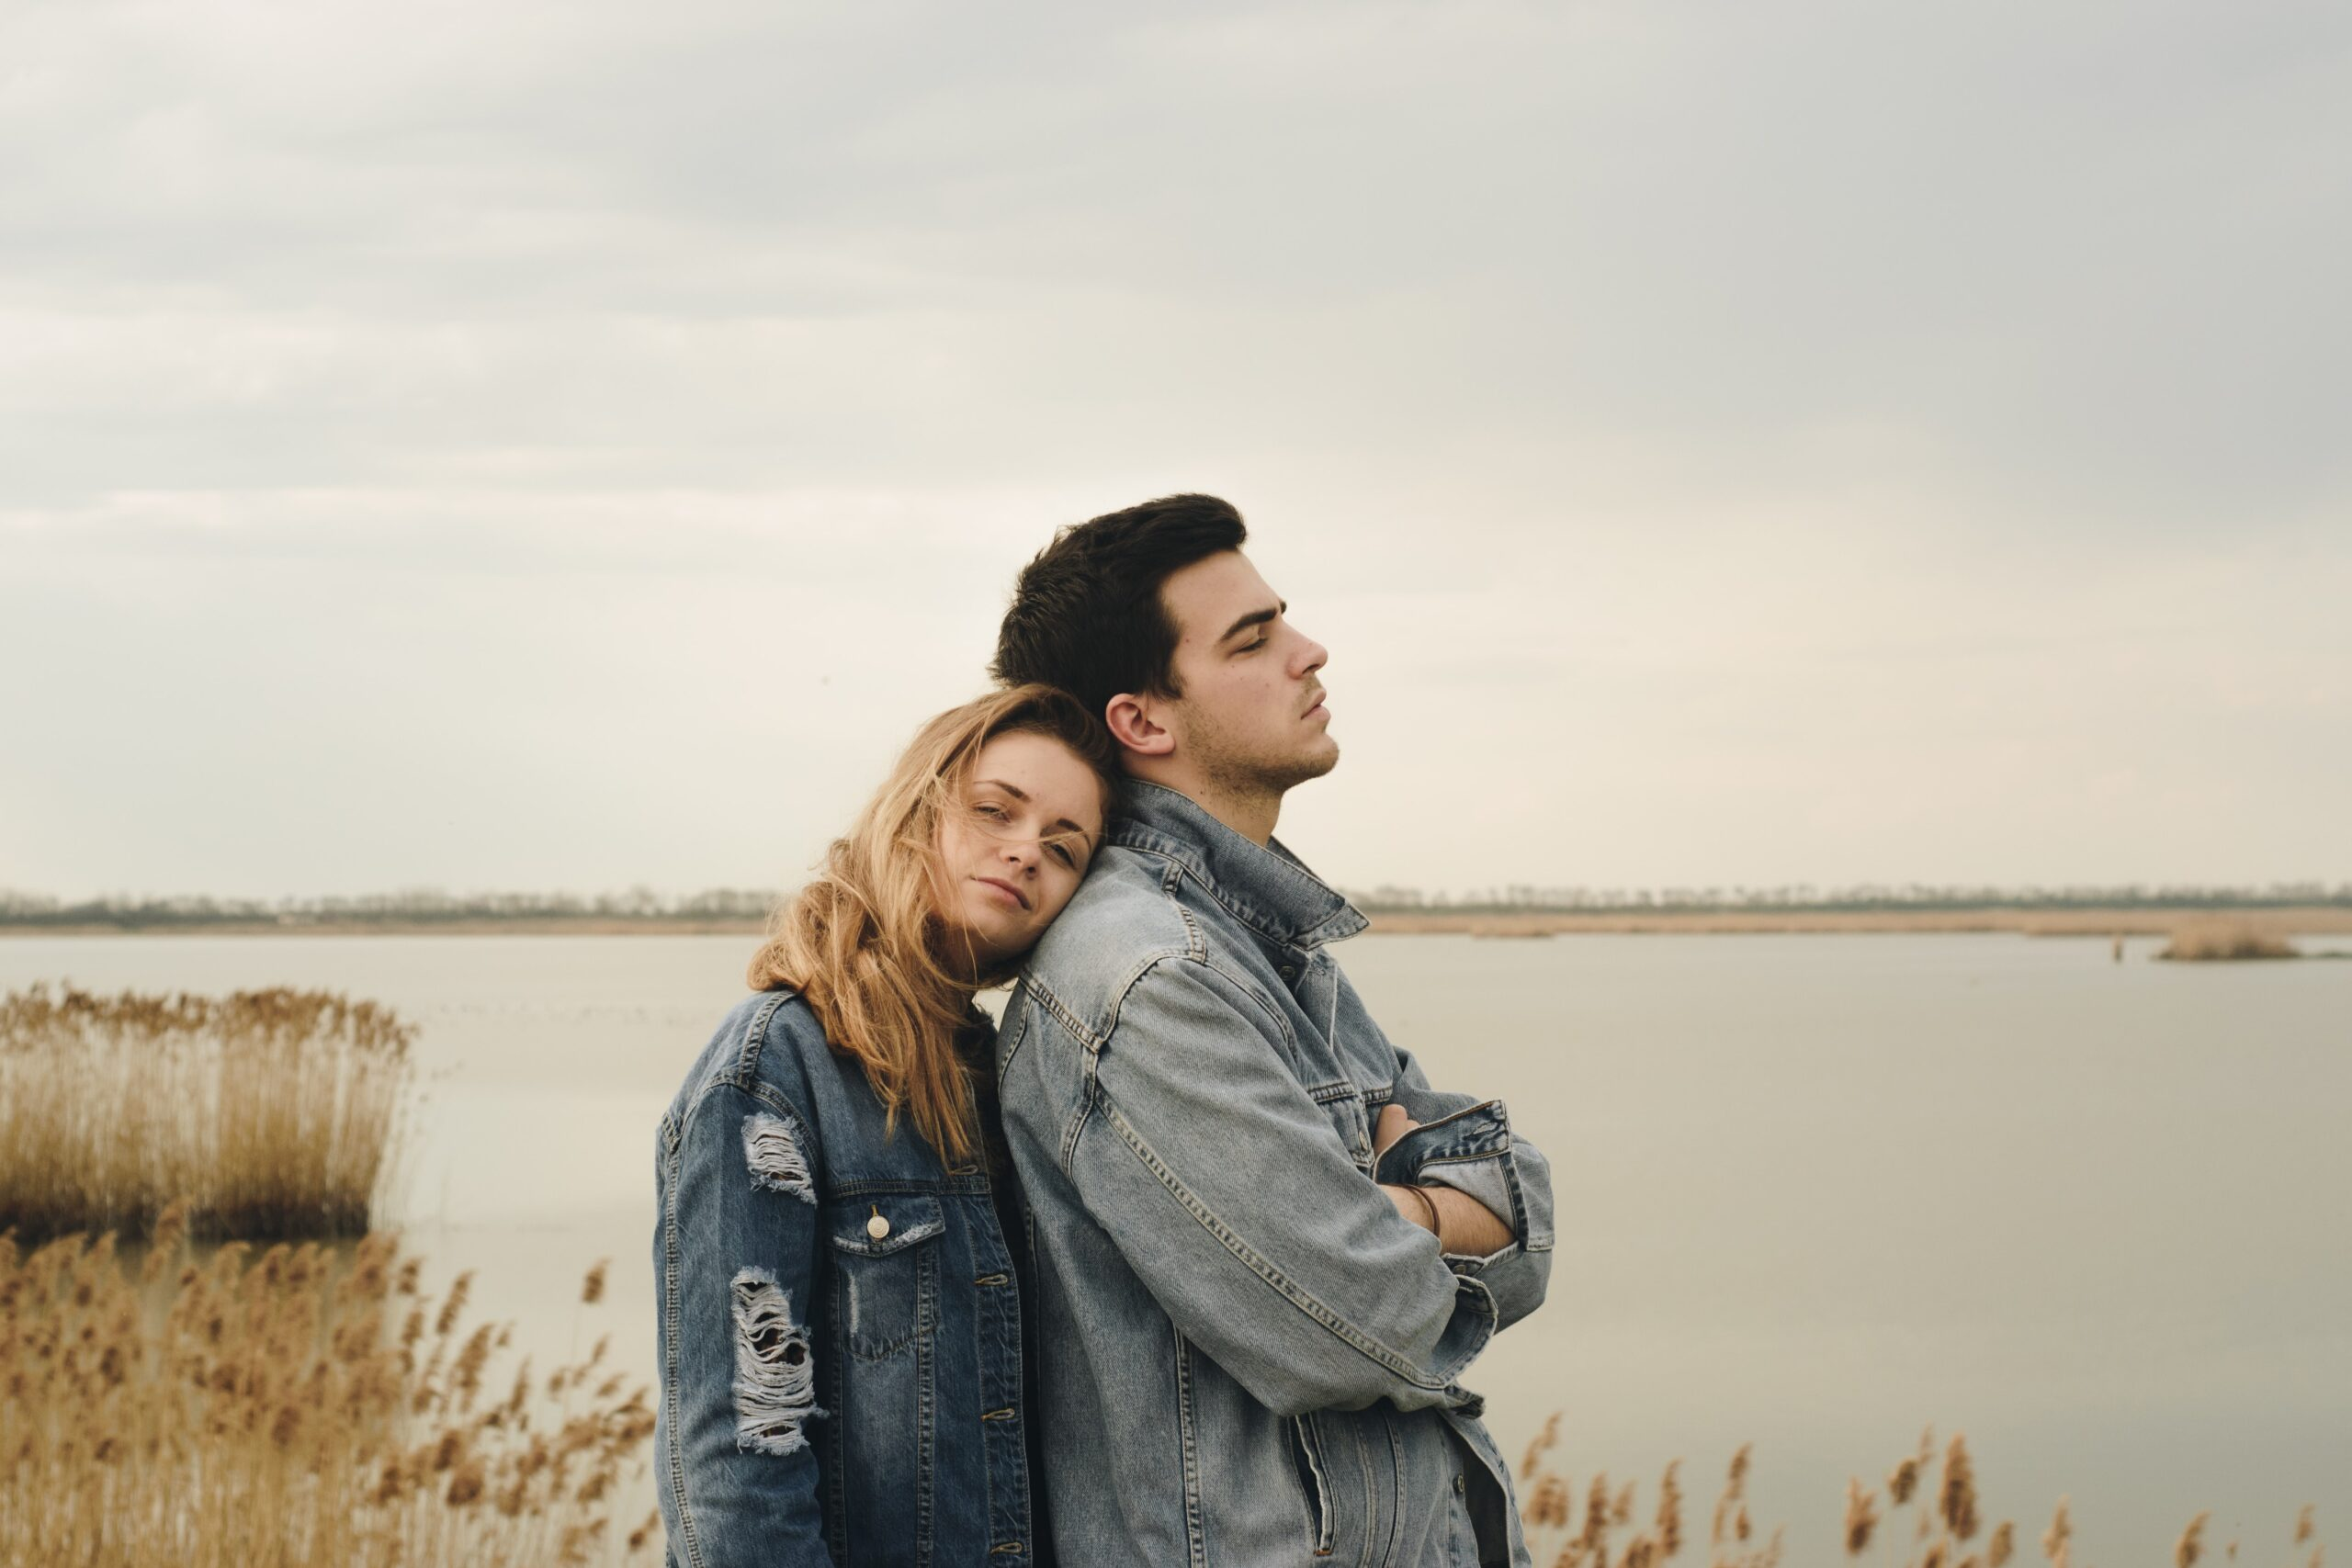 milan-popovic-Couple with male looking forward and female leaning against male's back-unsplash